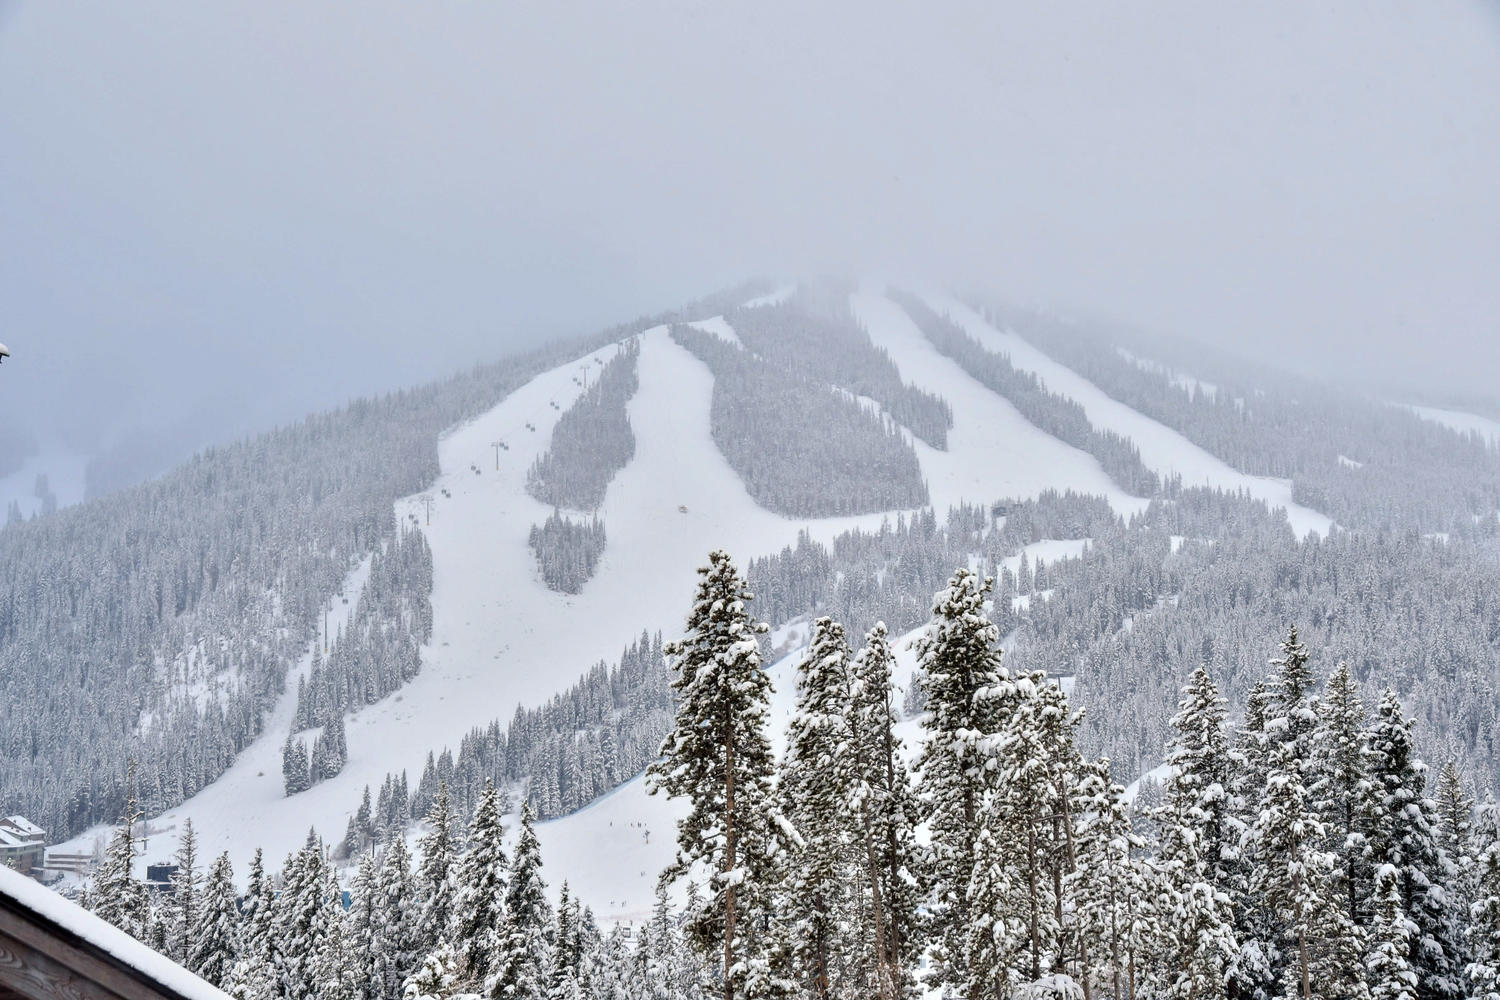 Amazing ski resort views from the back deck